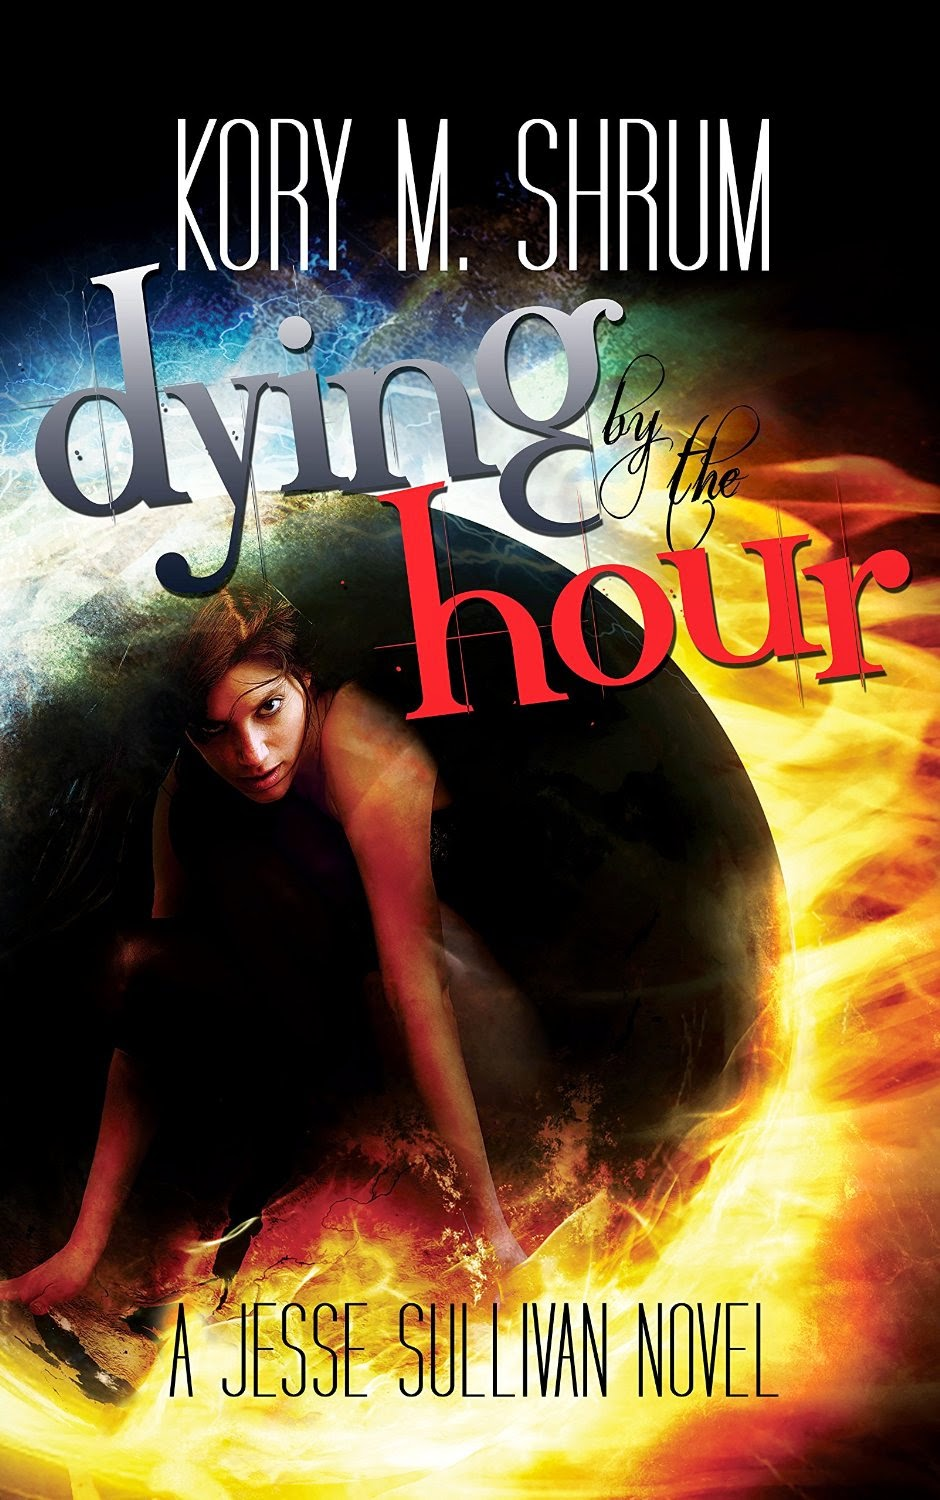 http://www.amazon.com/Dying-Hour-Jesse-Sullivan-Novel-ebook/dp/B00N27UJO0/ref=la_B00IQWJLLI_1_1?s=books&ie=UTF8&qid=1409856556&sr=1-1